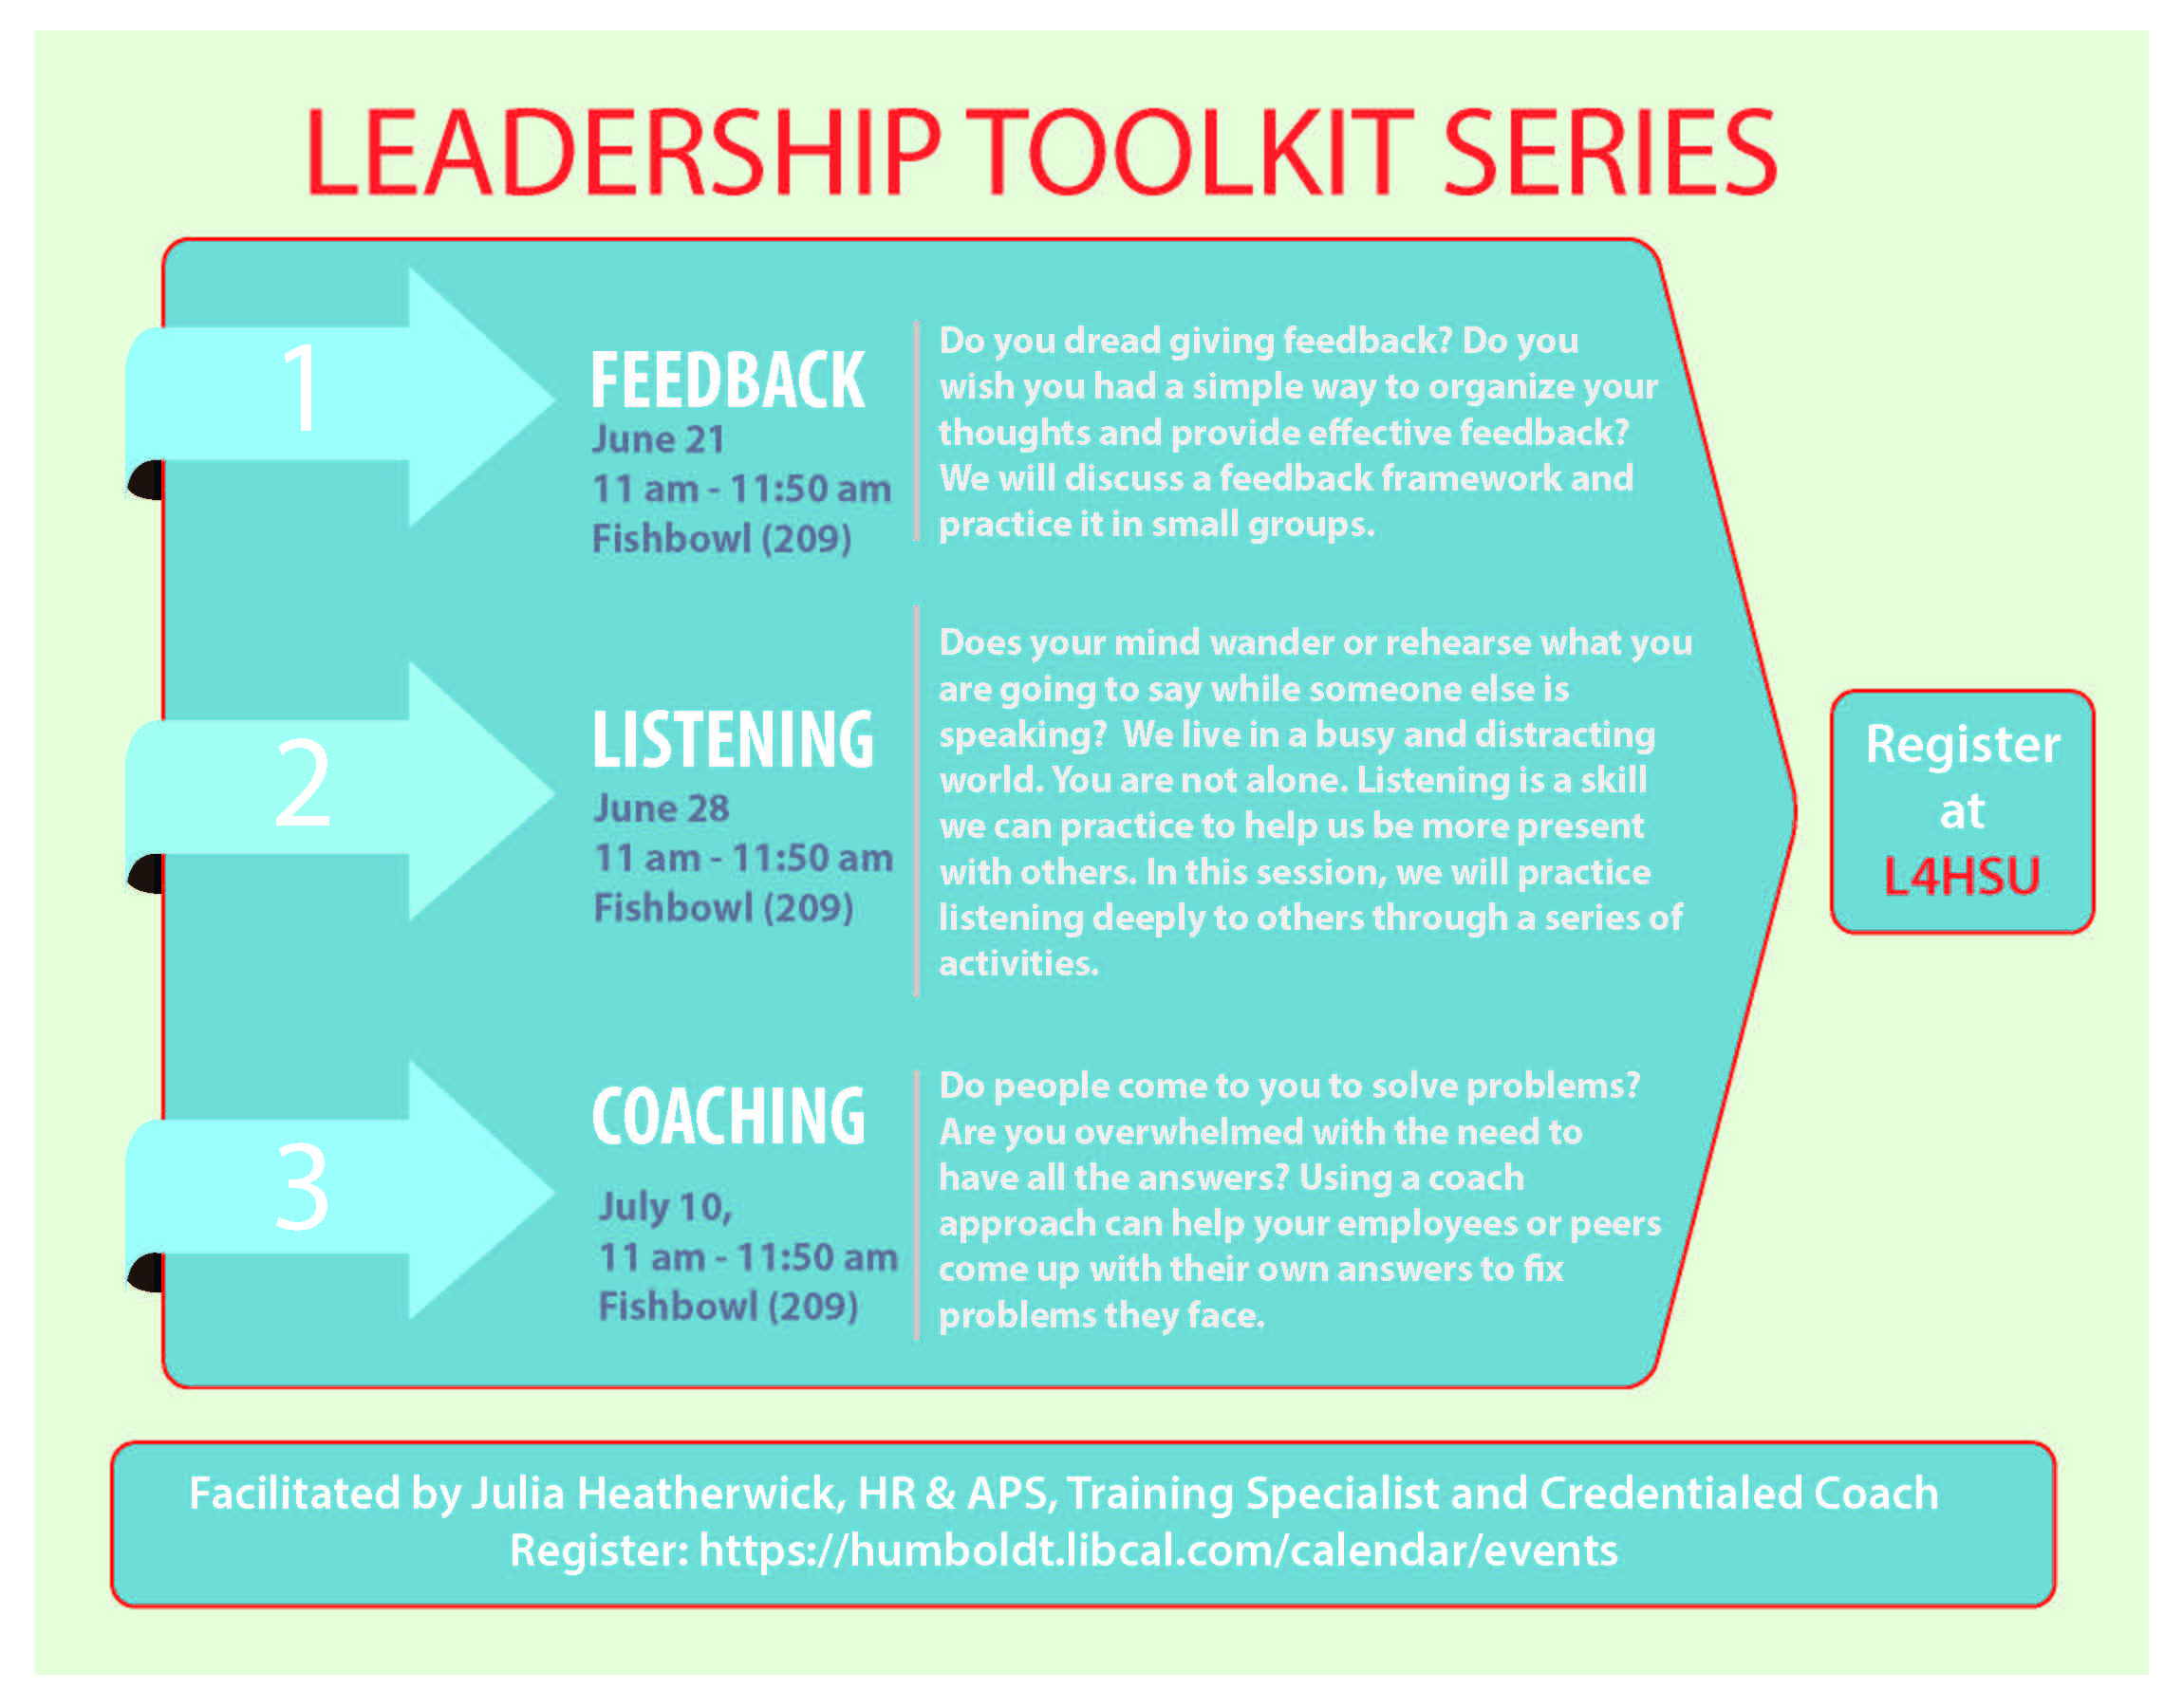 Leadership Toolkit Series: A Coach Approach